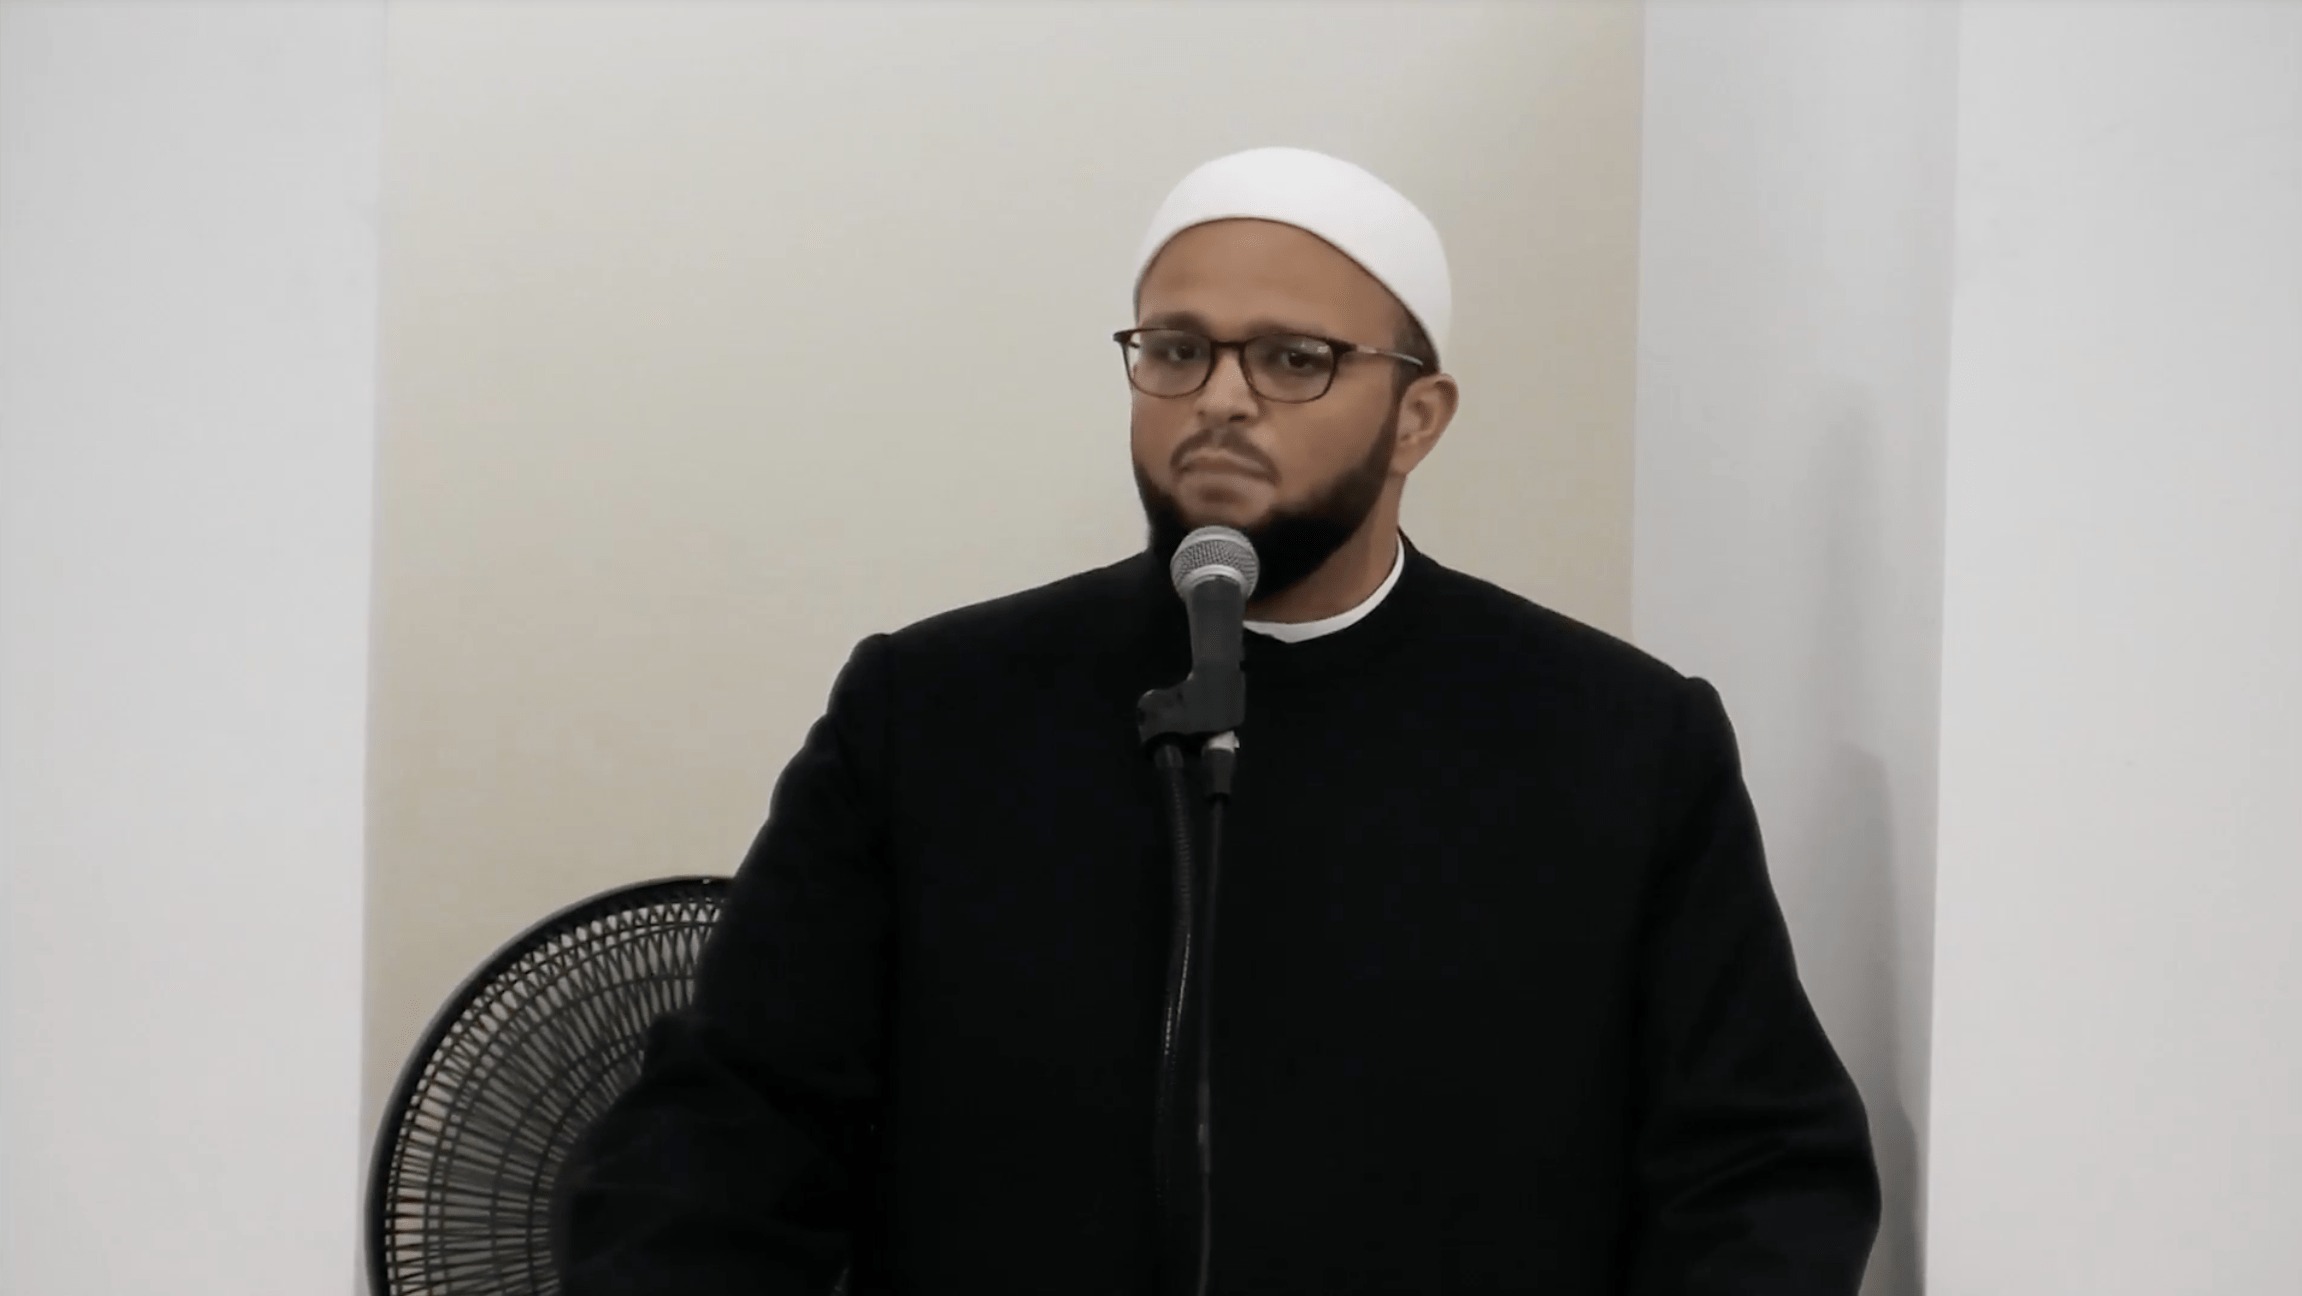 Yasir Fahmy – Muharram: Allah is With Me & He Will Guide Me